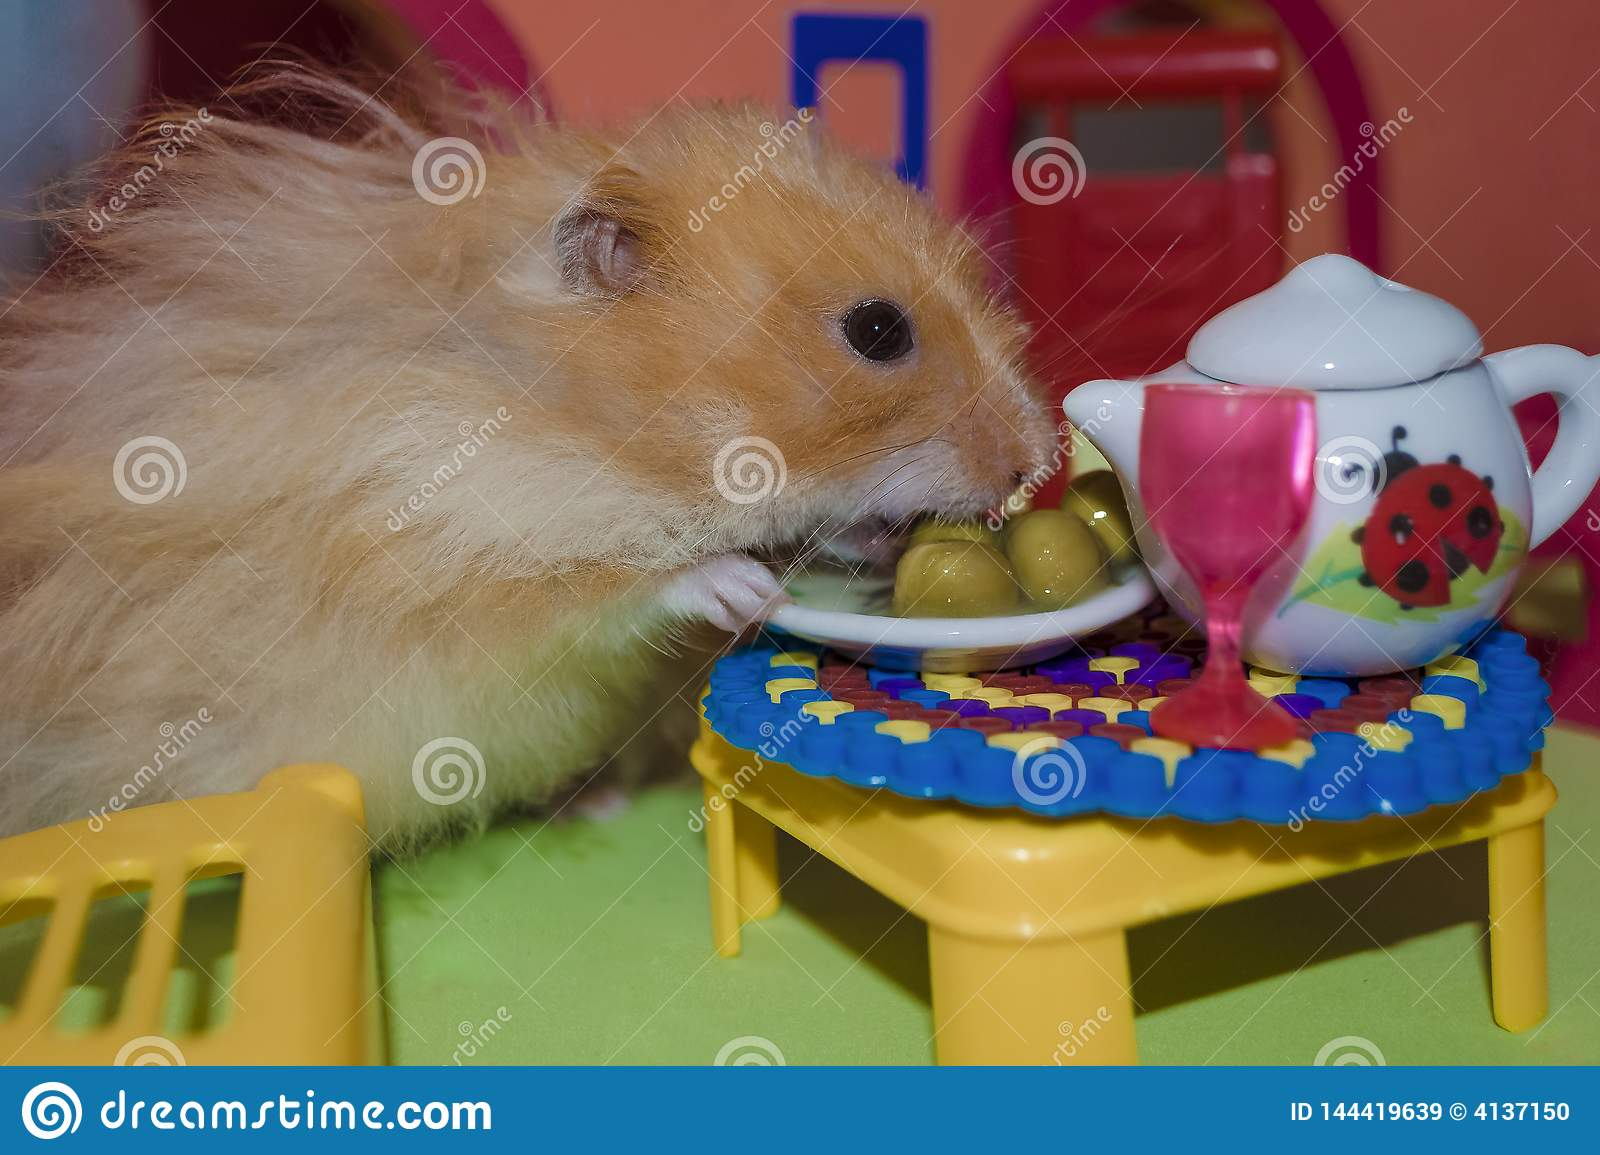 Cute fluffy light brown hamster eats peas at the table in his house. Close-up pet eats.